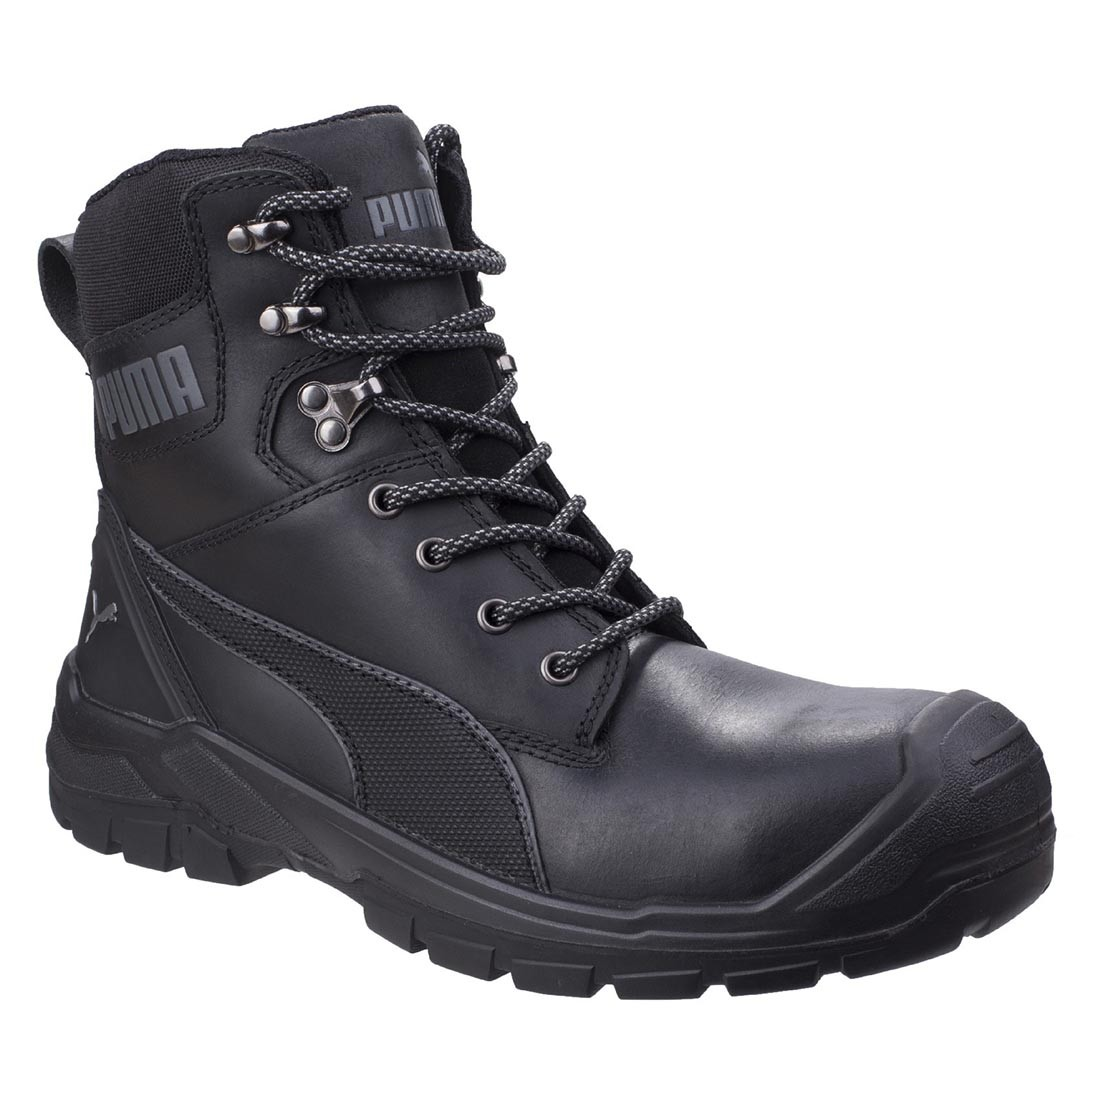 Puma Safety Conquest S3 Waterproof Black Leather Mens Safety Boots